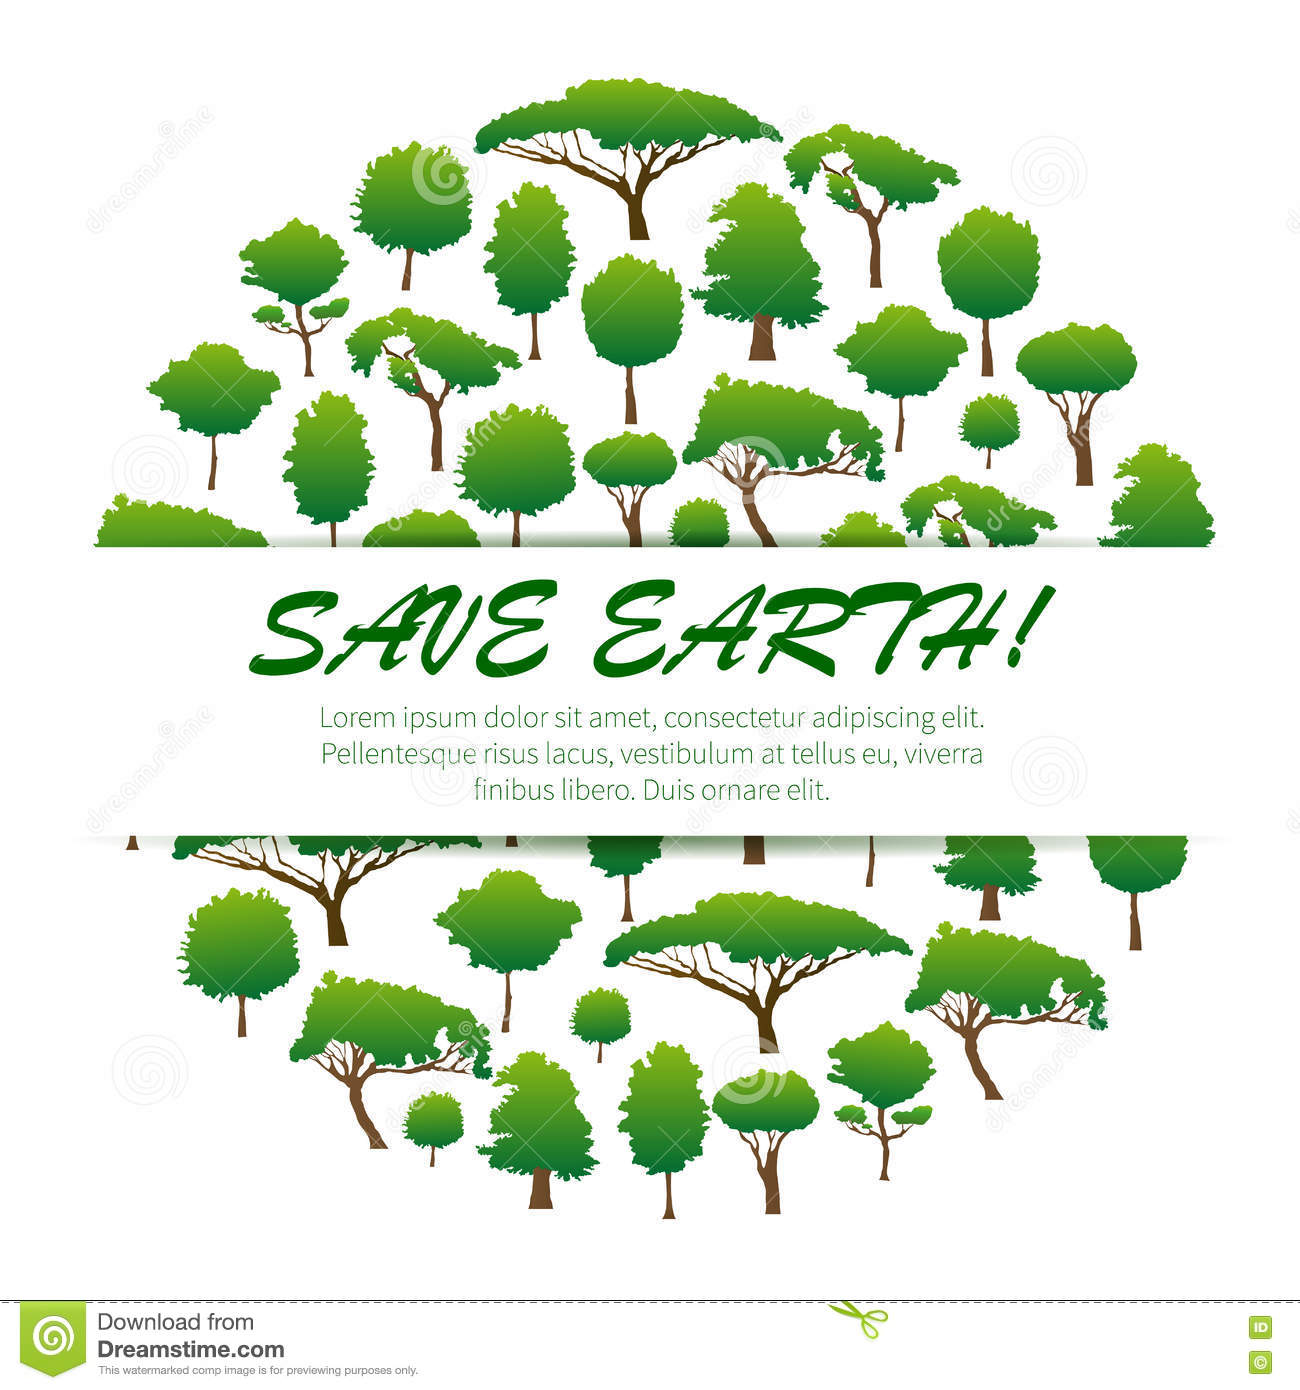 Poster design on save earth - Banner Concept Conservation Design Earth Ecology Emblem Environment Environmental Green Nature Poster Protection Save